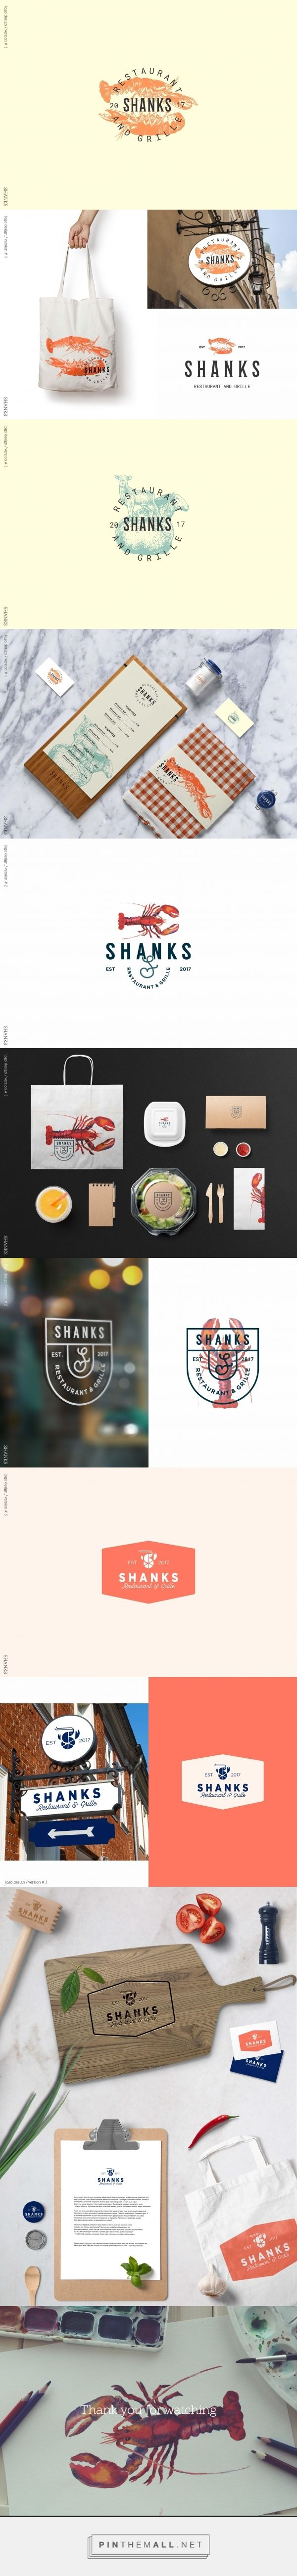 Shanks Restaurant and Grille Branding Concepts by